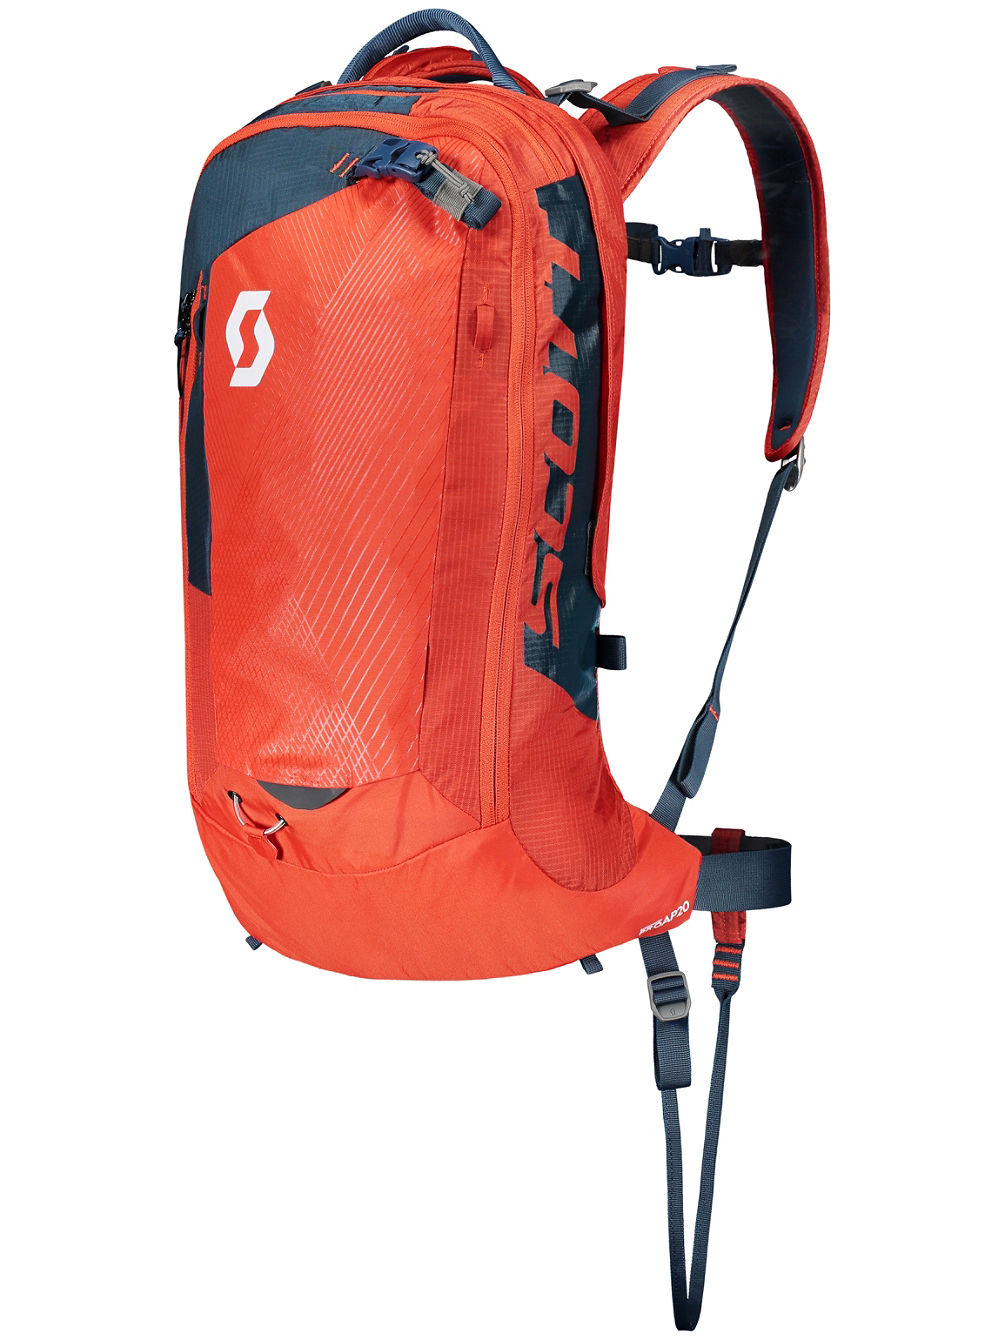 Backcountry Pro AP 20L Kit Backpack